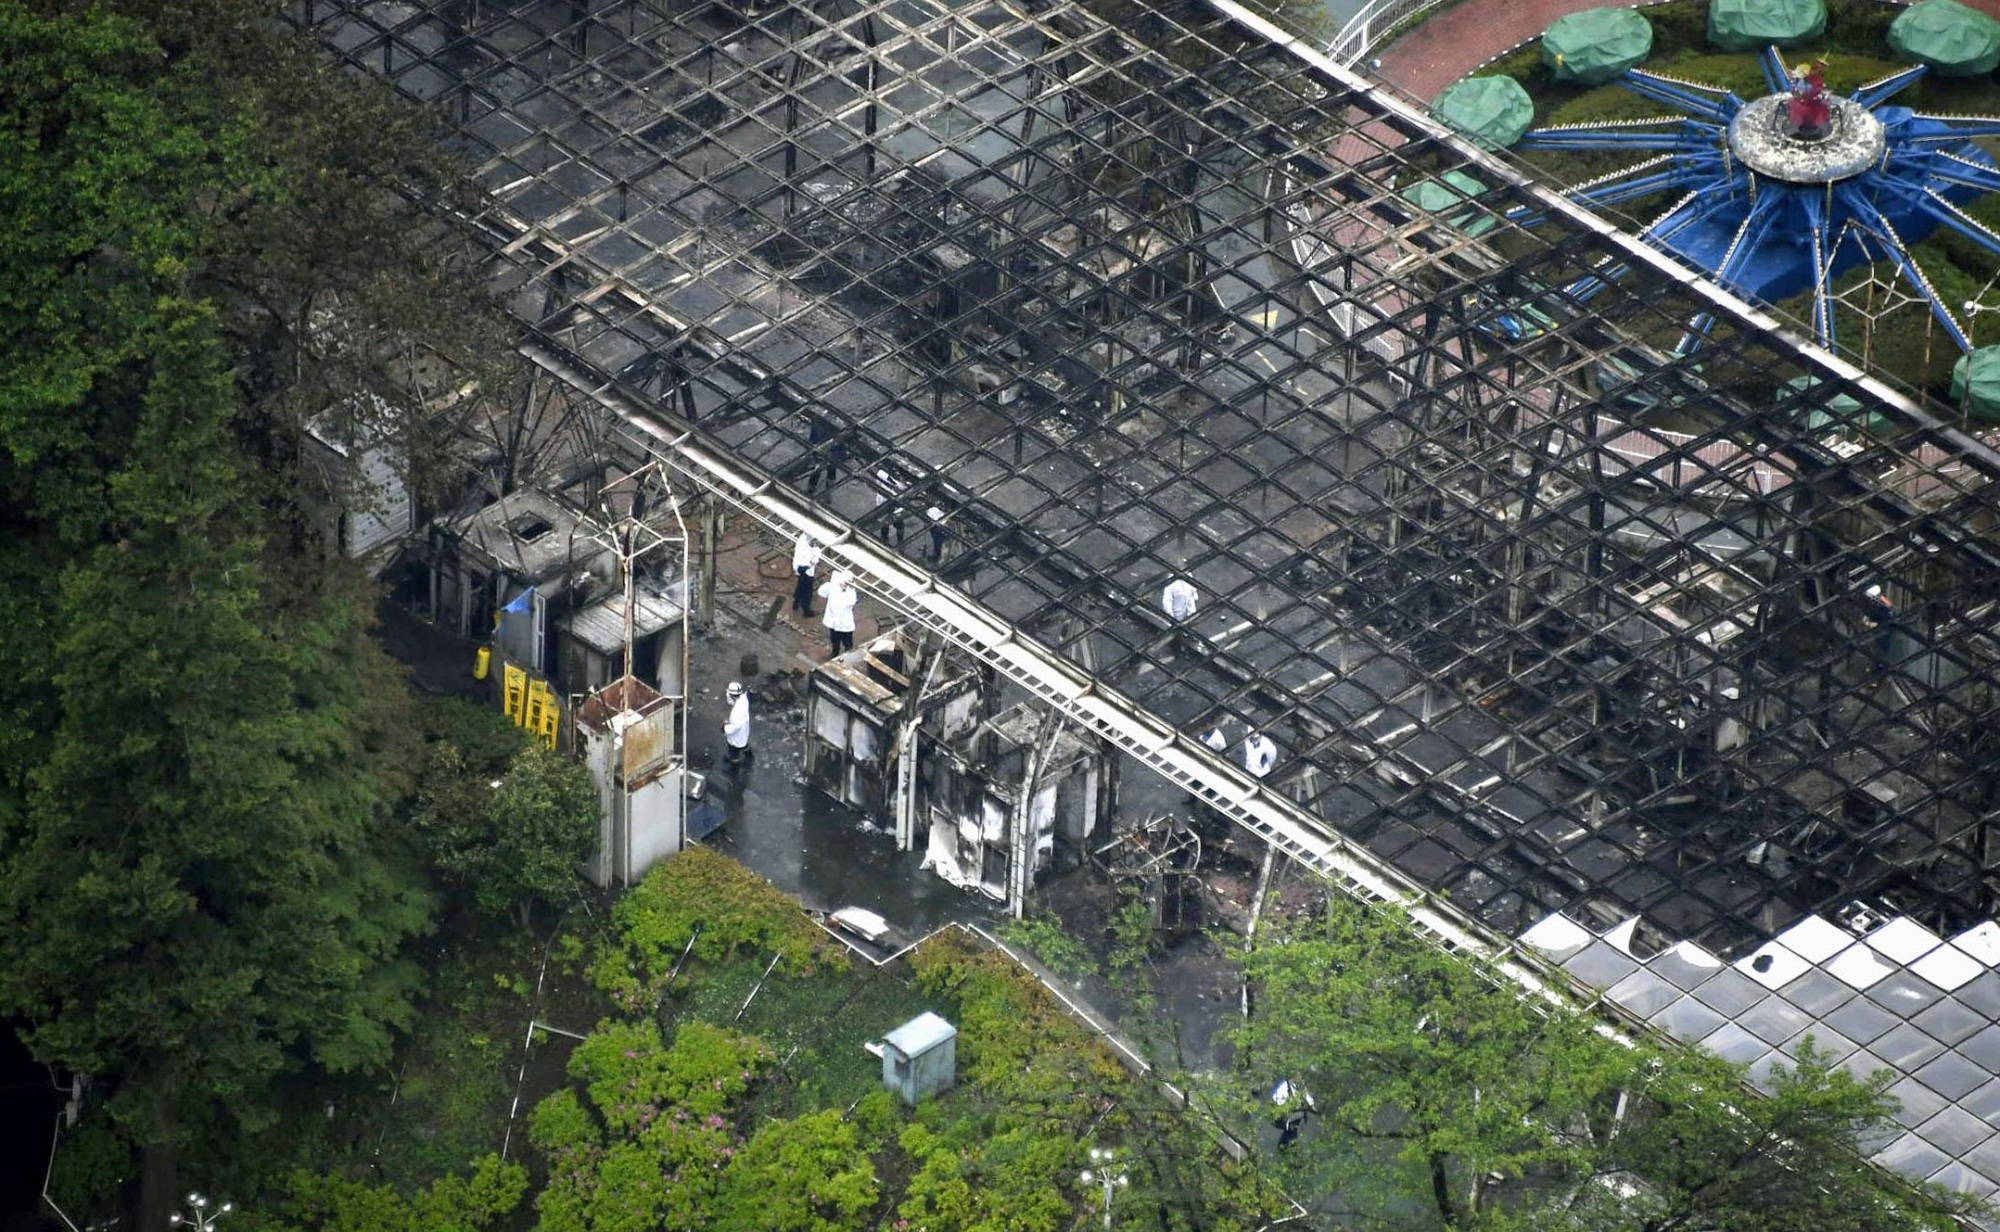 A fire late Friday at Seibuen in Tokorozawa, Saitama Prefecture, burned about 1,000 sq. meters of the amusement park. kyodo